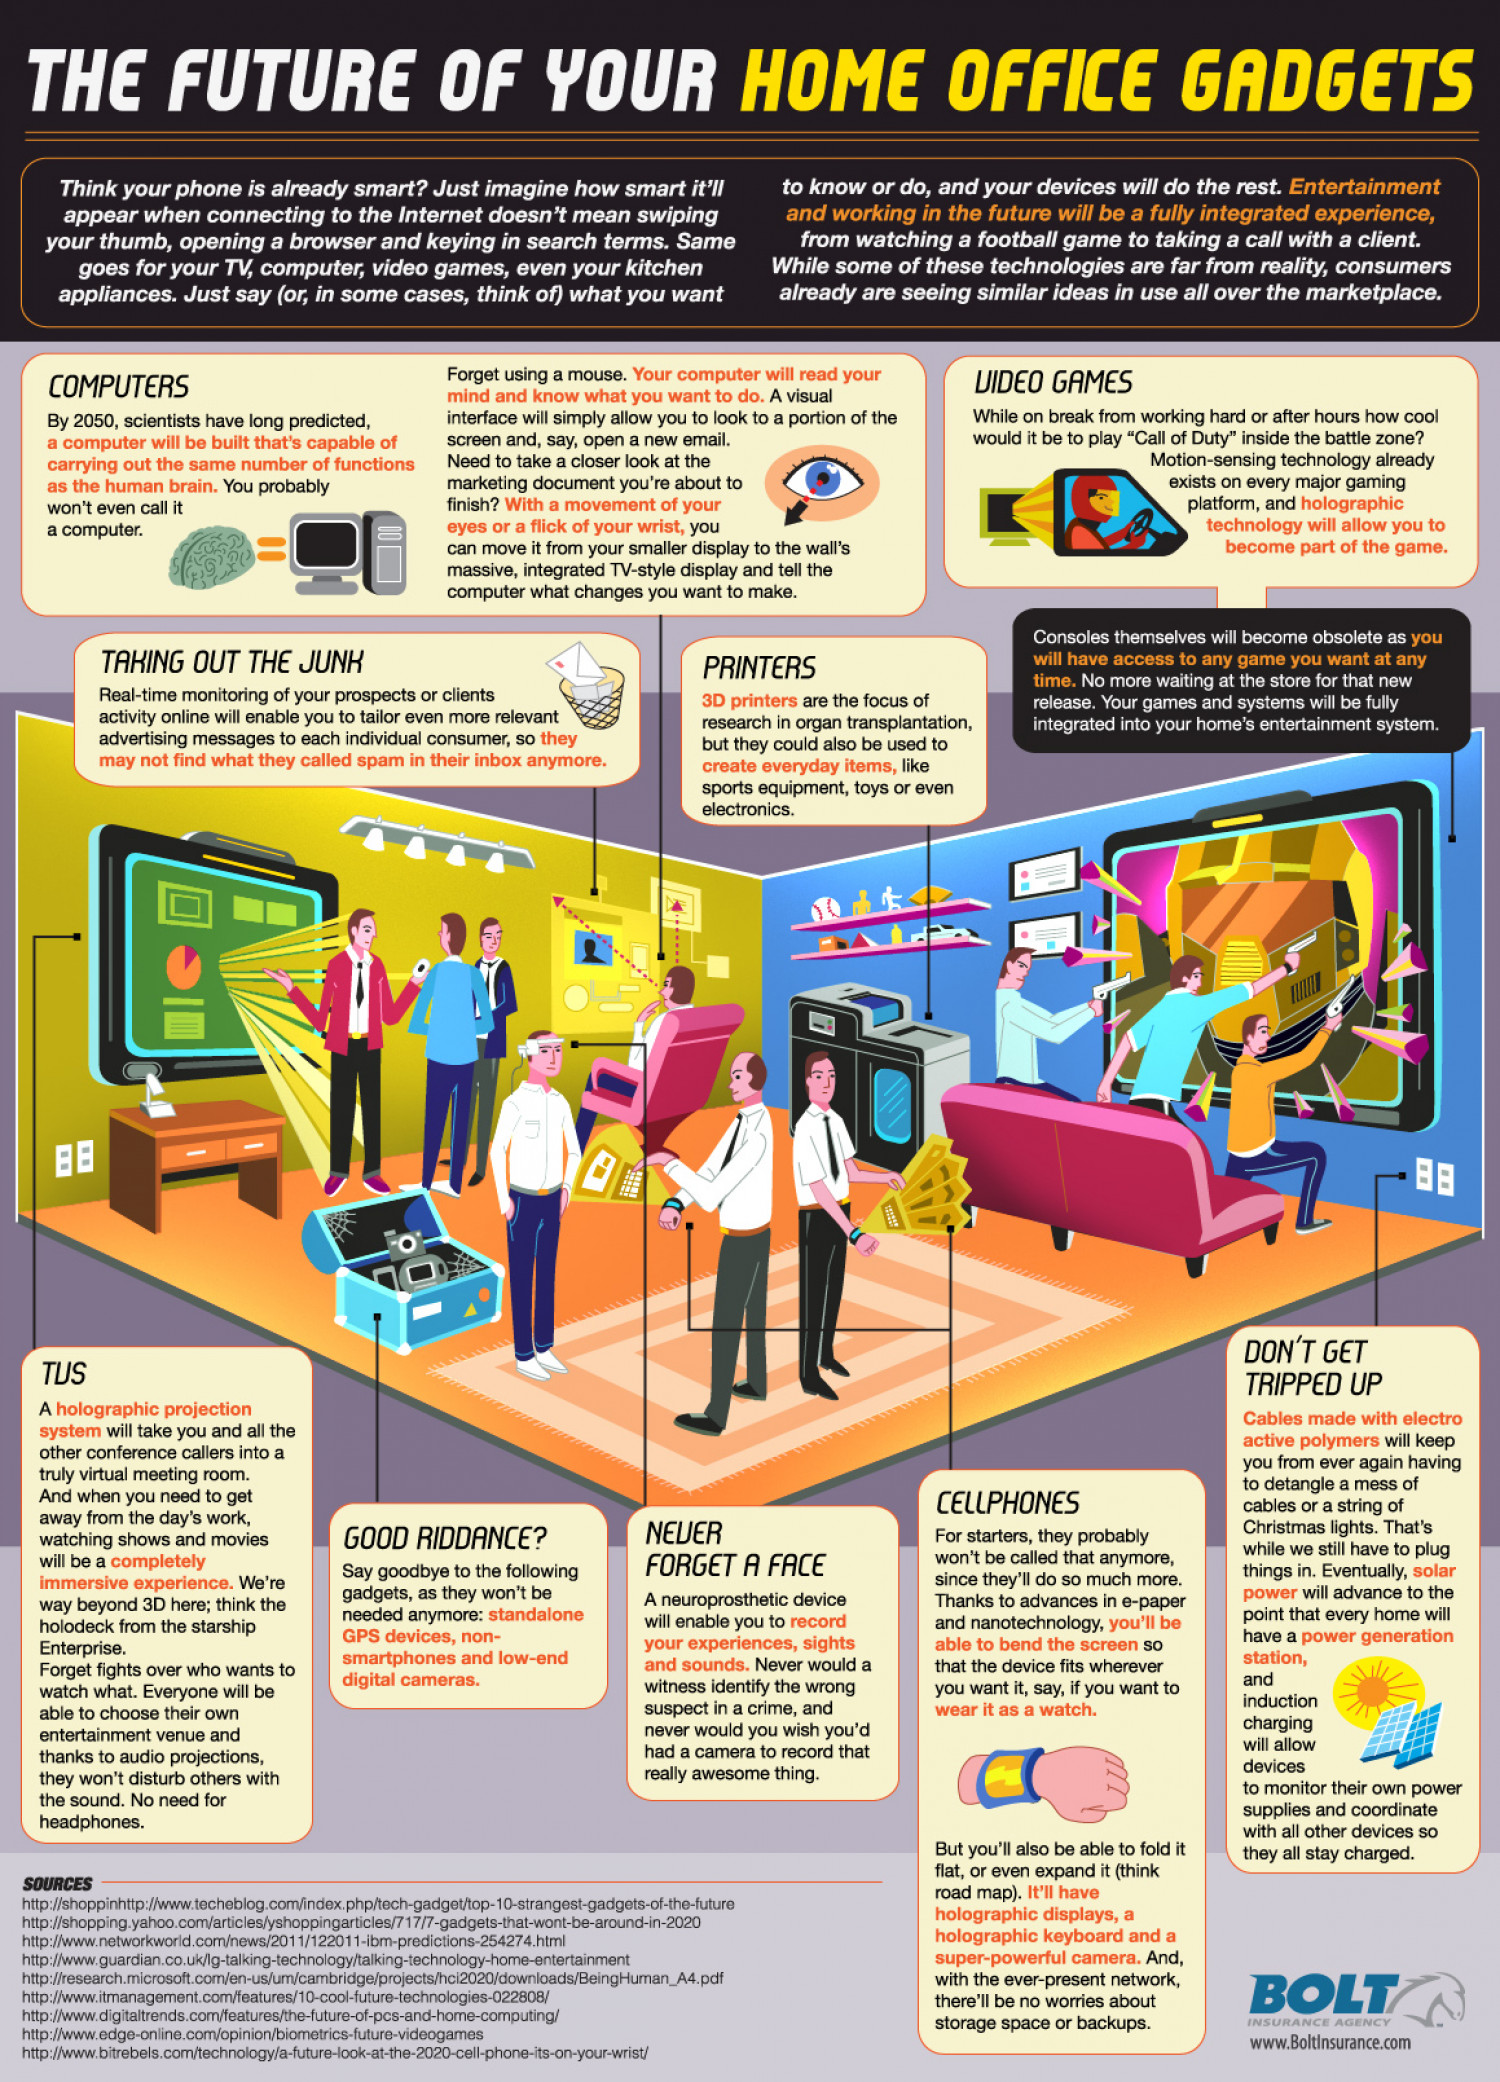 Future of Your Home Office Gadgets Infographic explores the future technology of the home office Infographic